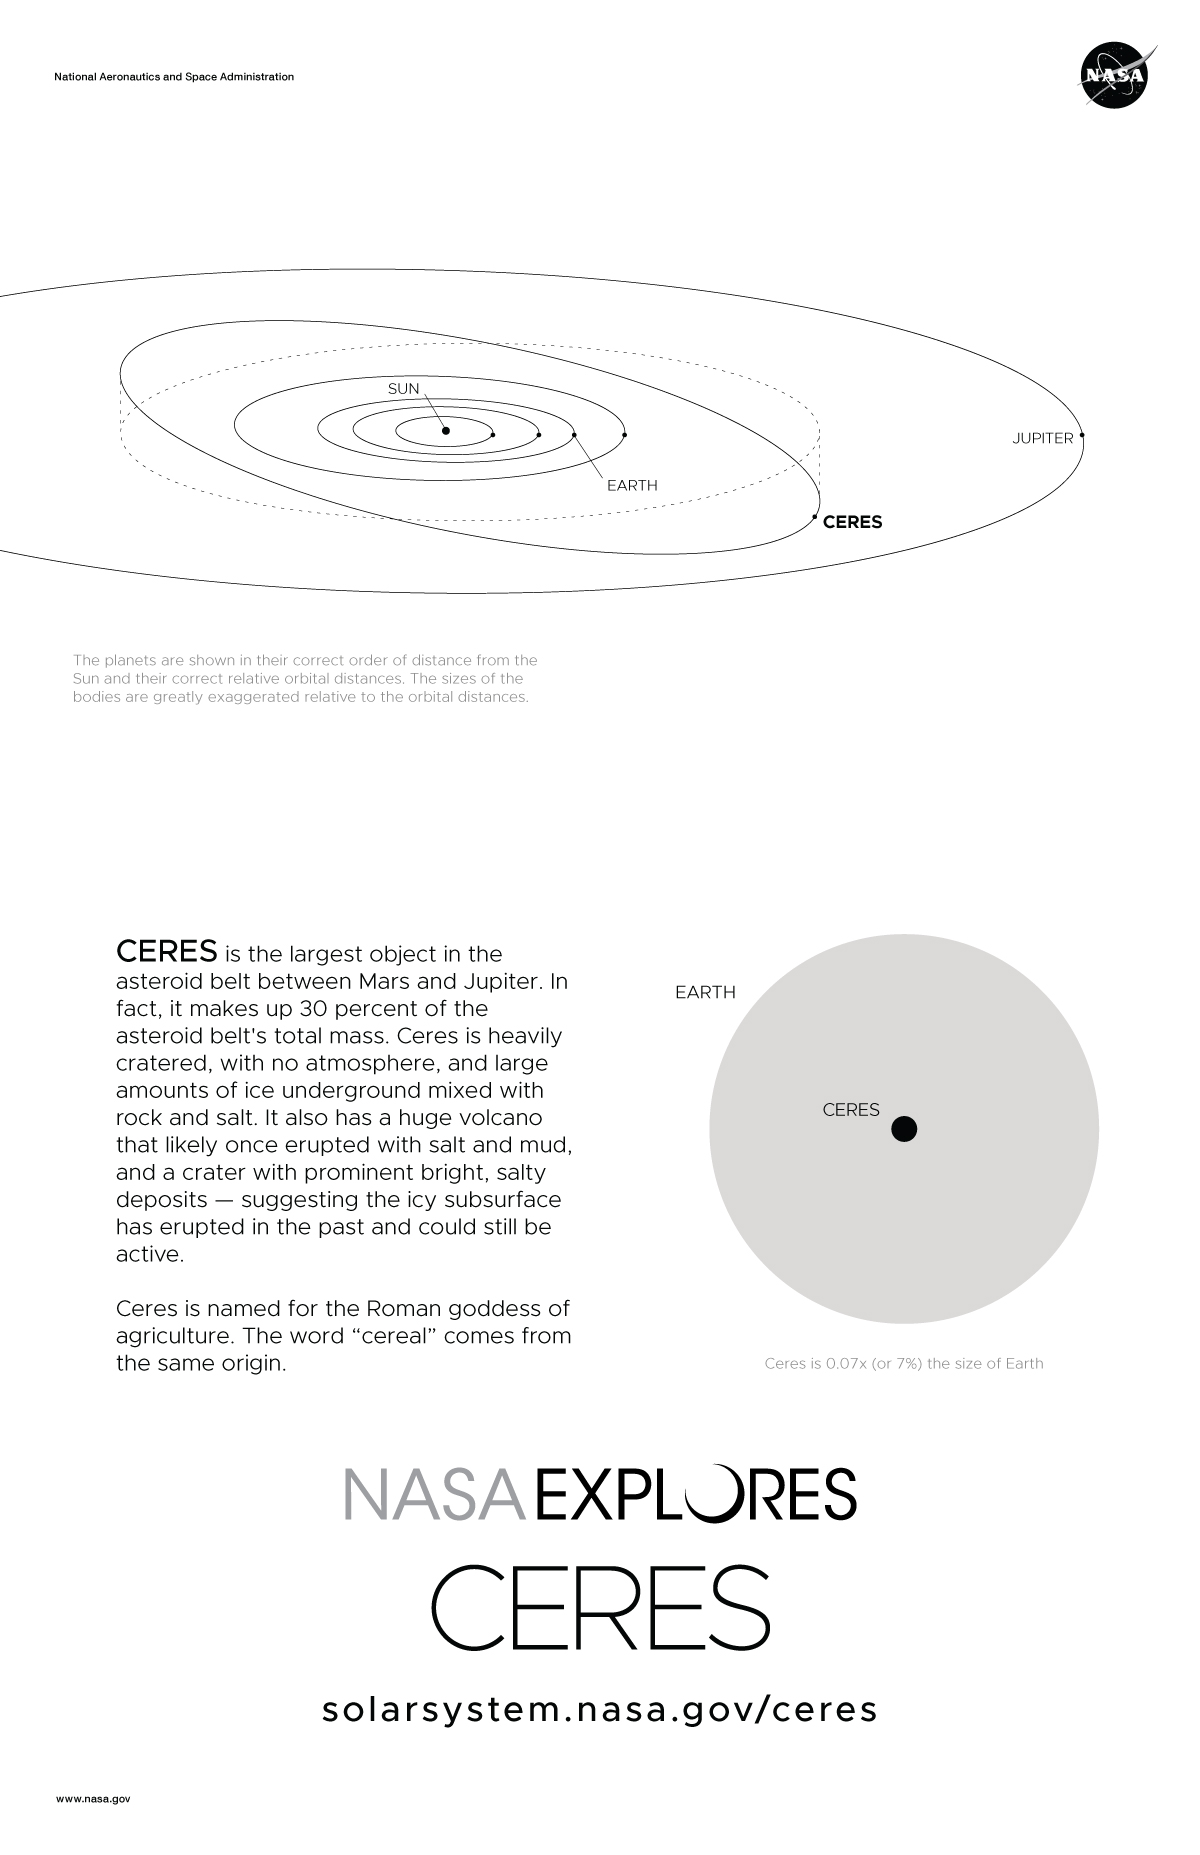 diagram of the solar system image credit nasa